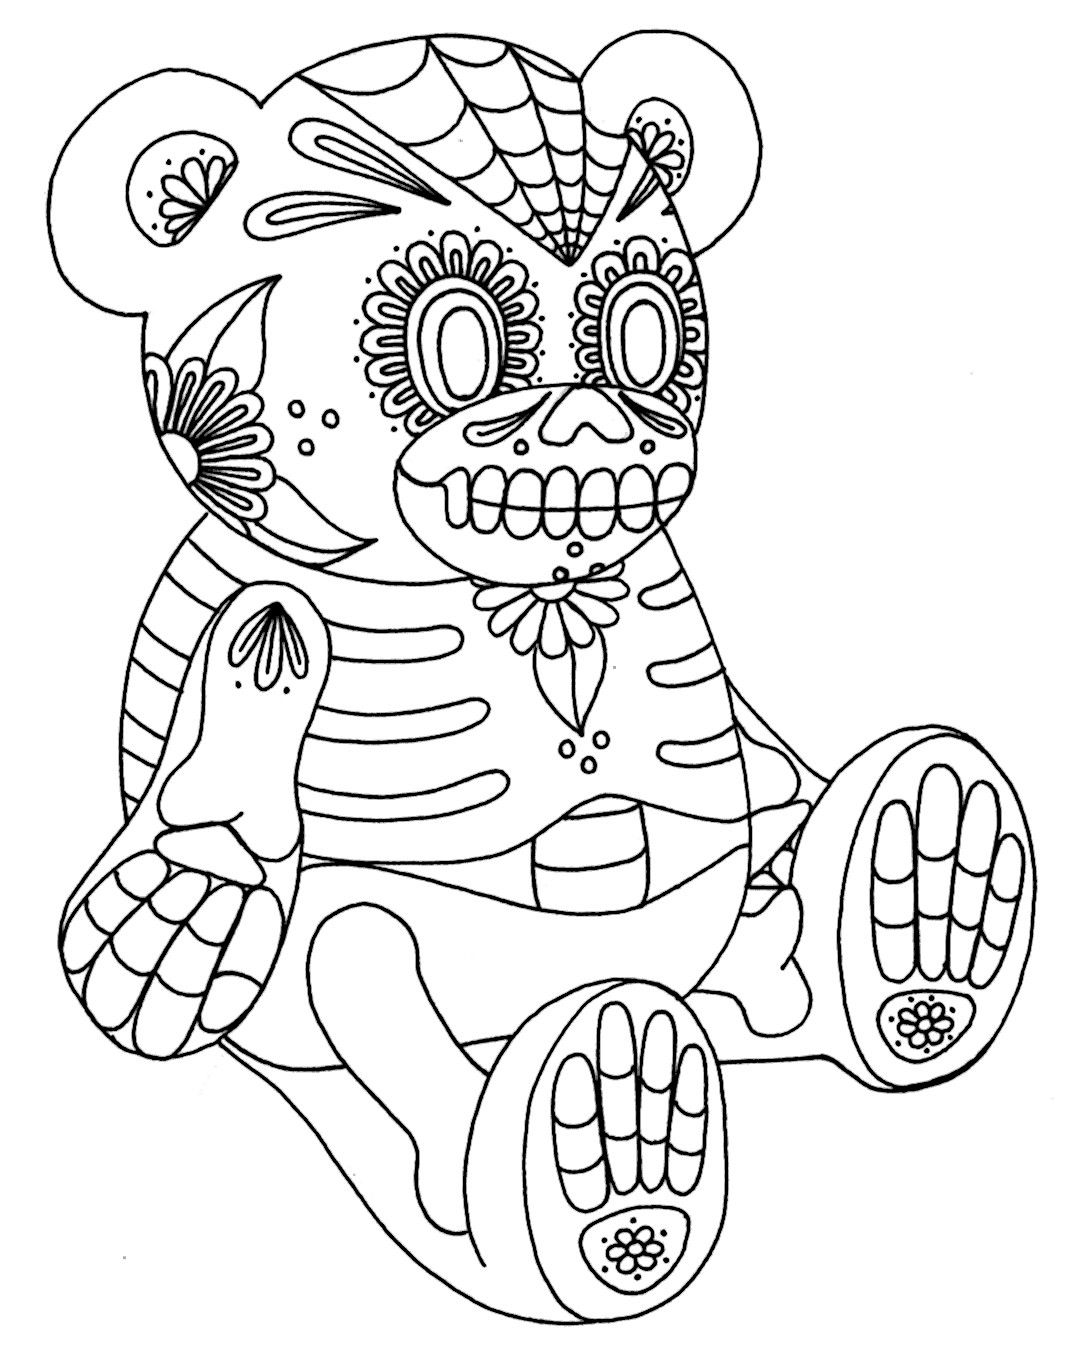 free color in sugar skull | Sugar Skull Coloring Pages free download ...